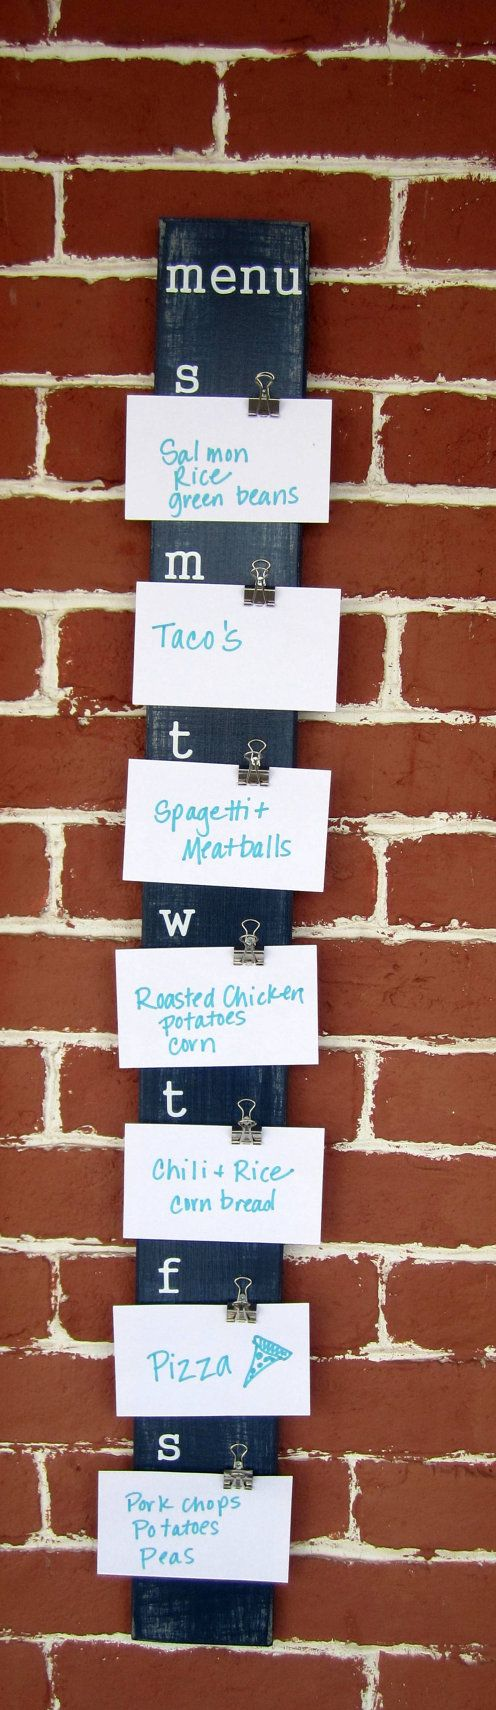 "Weekly Planning Menu Board - 3.75"" x 36.5"" - Using index cards rather than chalkboard paint. No need to wipe down if you need to rearrange a meal! Genius."